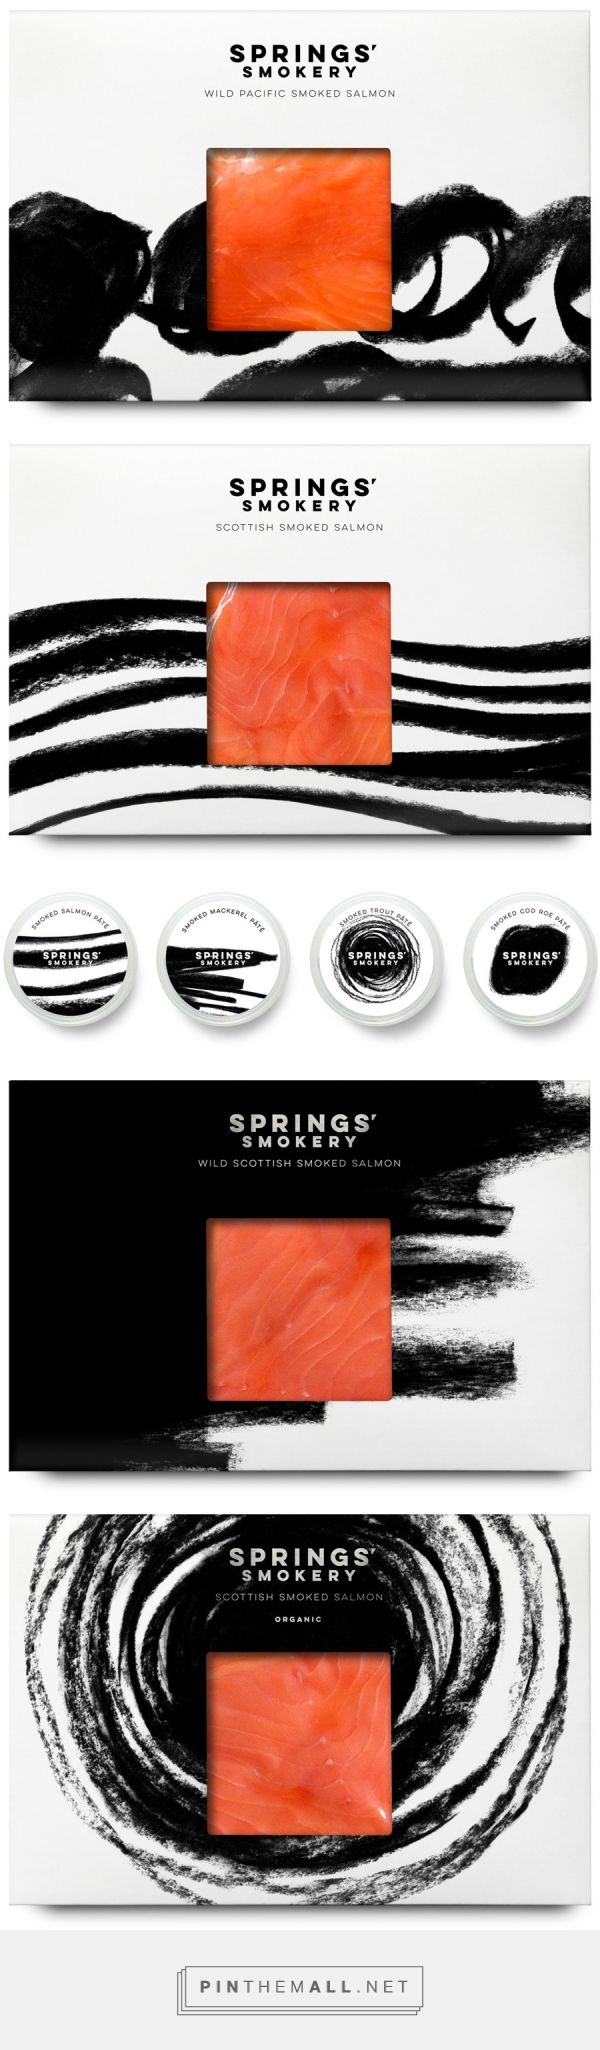 Package Design for Springs' Smokery by Distil Studio — BP&O http://bpando.org/2015/08/13/package-design-springs-smokery/ - created via http://pinthemall.net